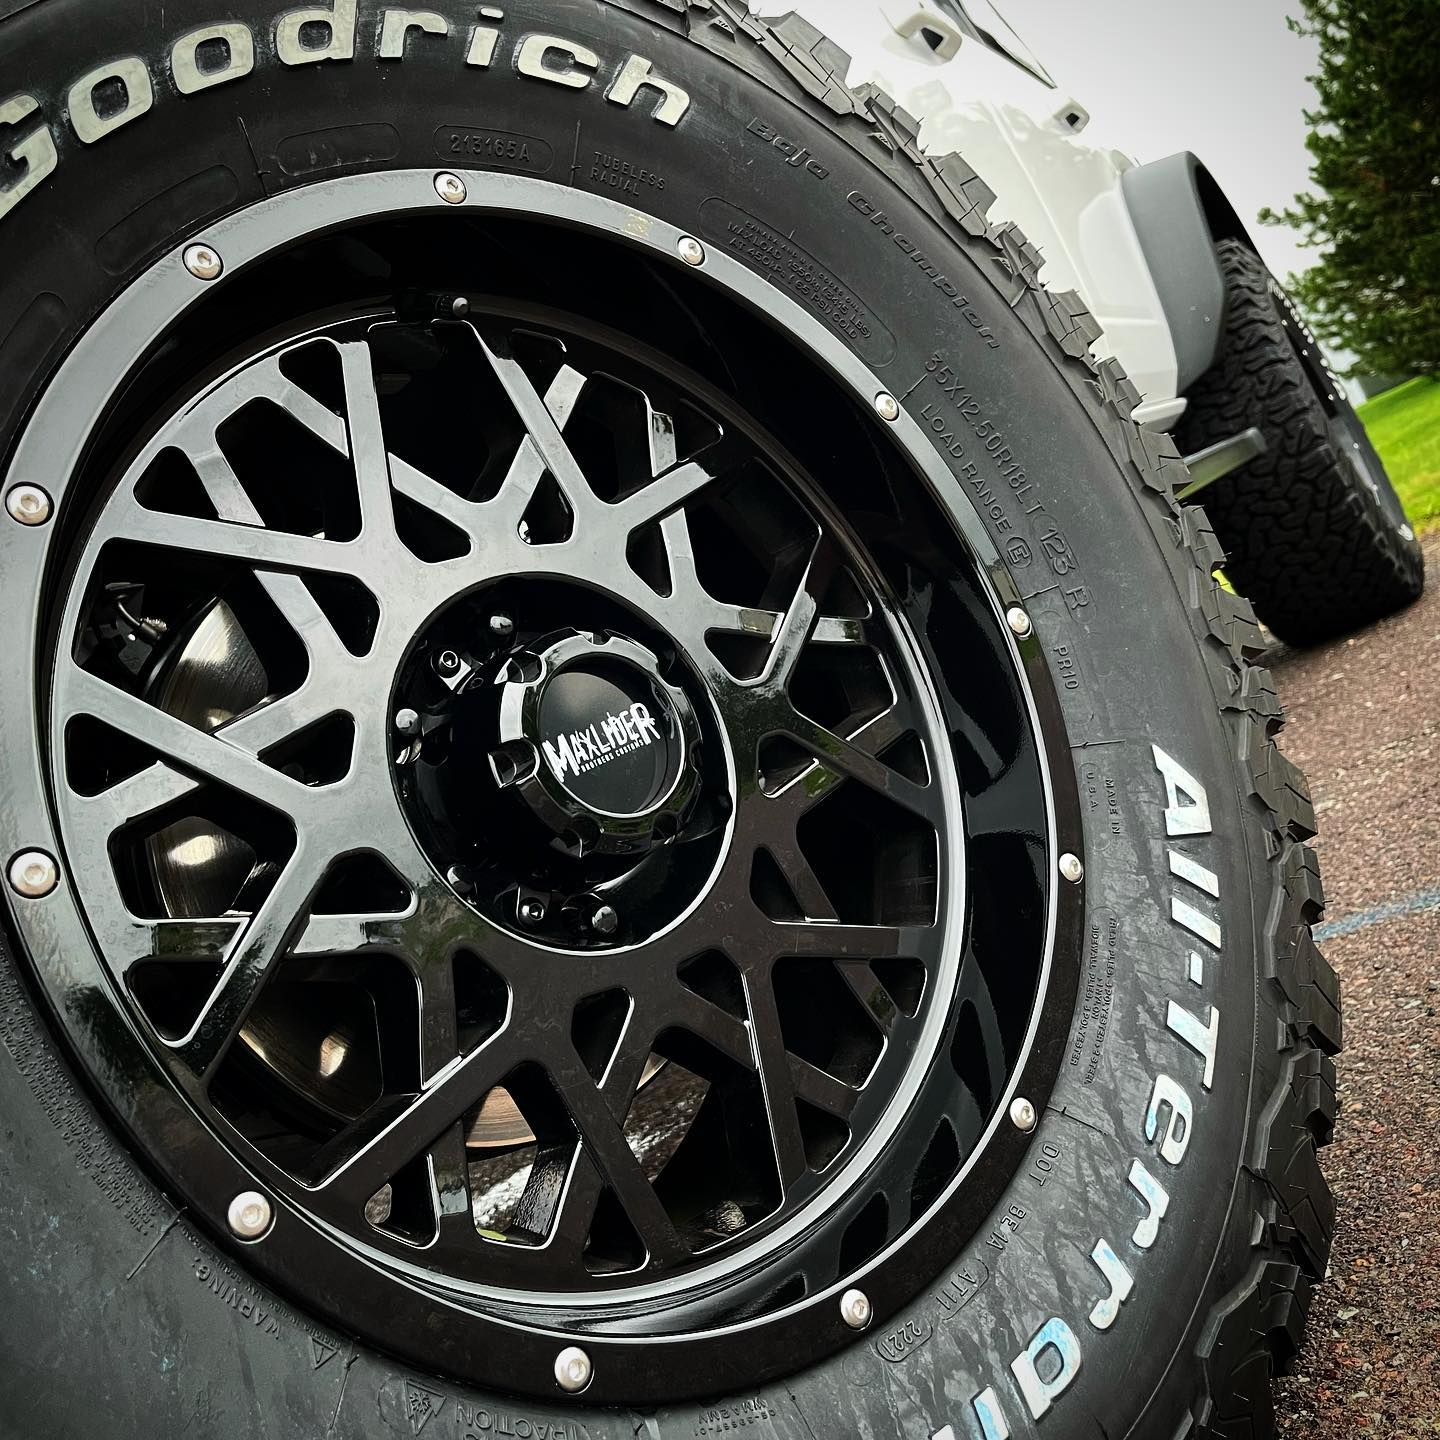 """Maxlider 2021 Bronco Wheels 18x9 with 35x12.5x18"""" KO2 tires 4-Door Outer Banks Oxford White4.jpg"""